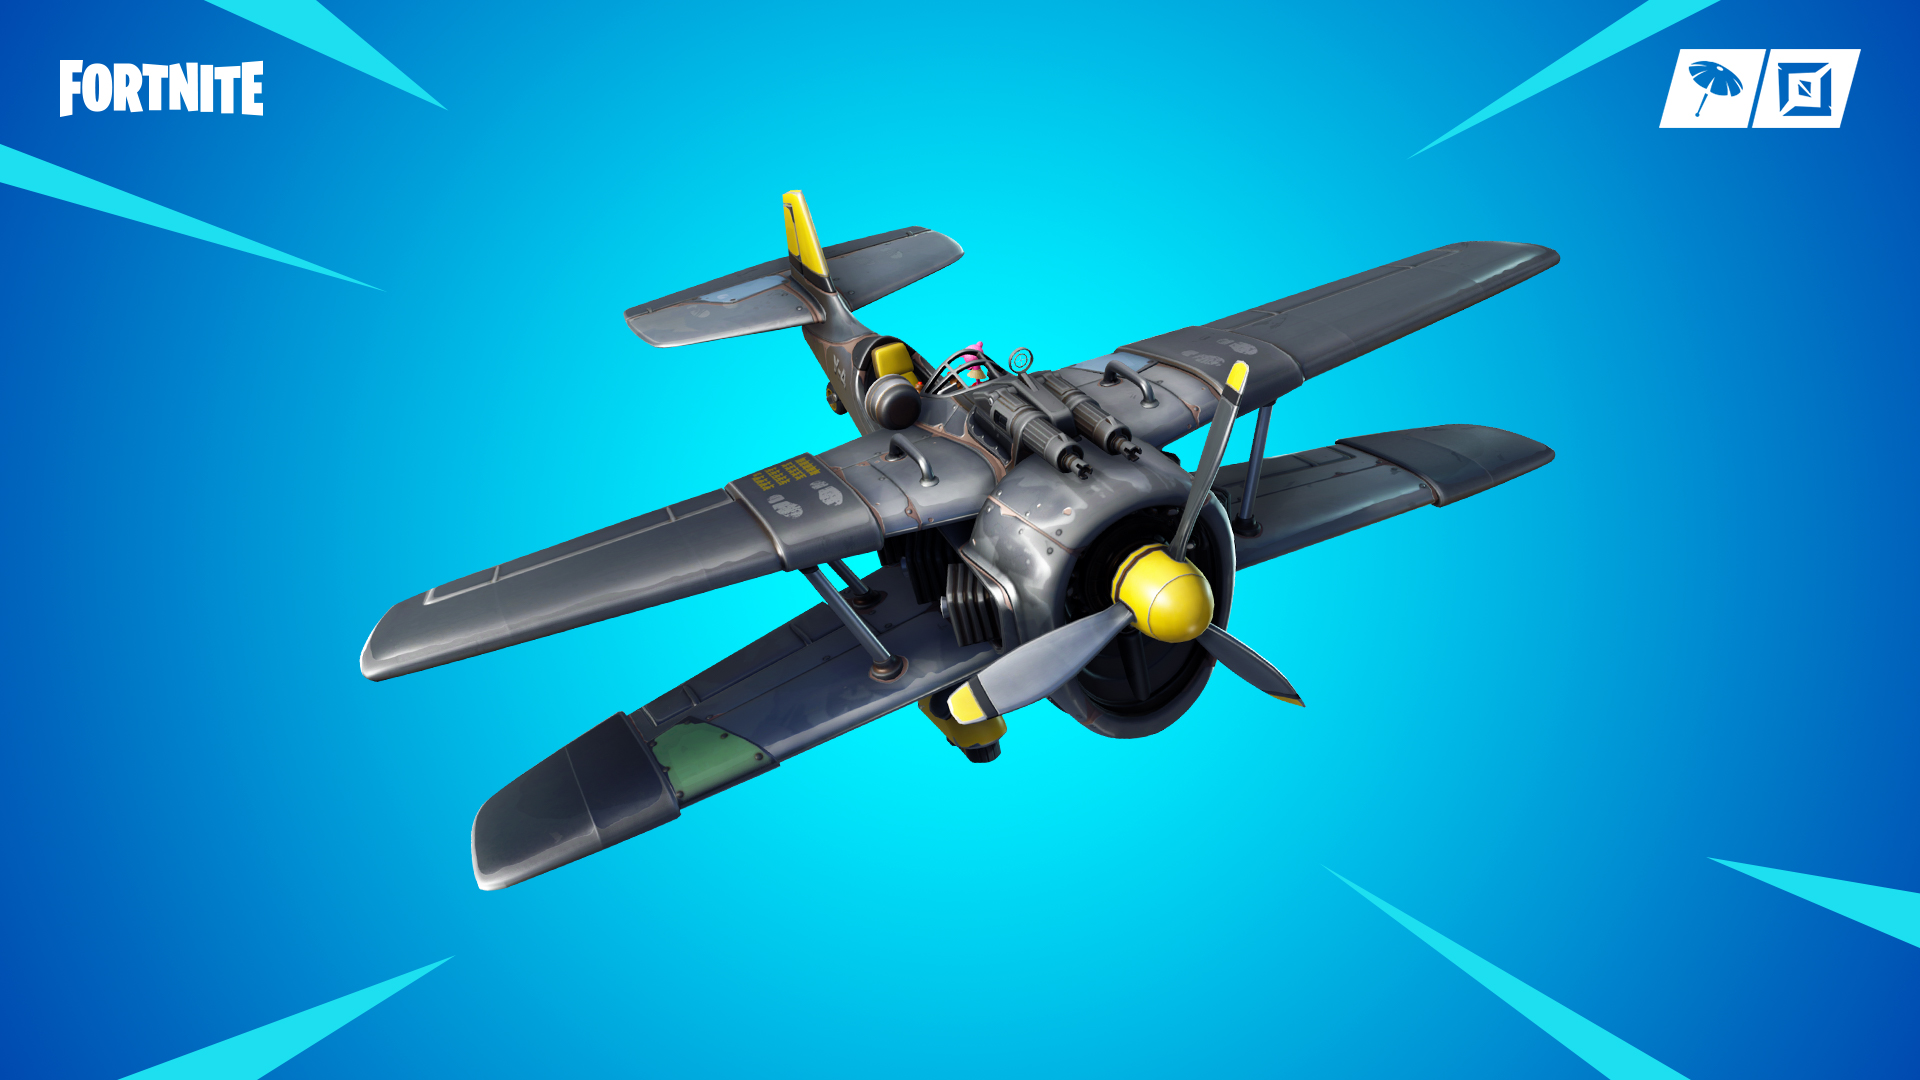 Fortnite X-4 Stormwing plane